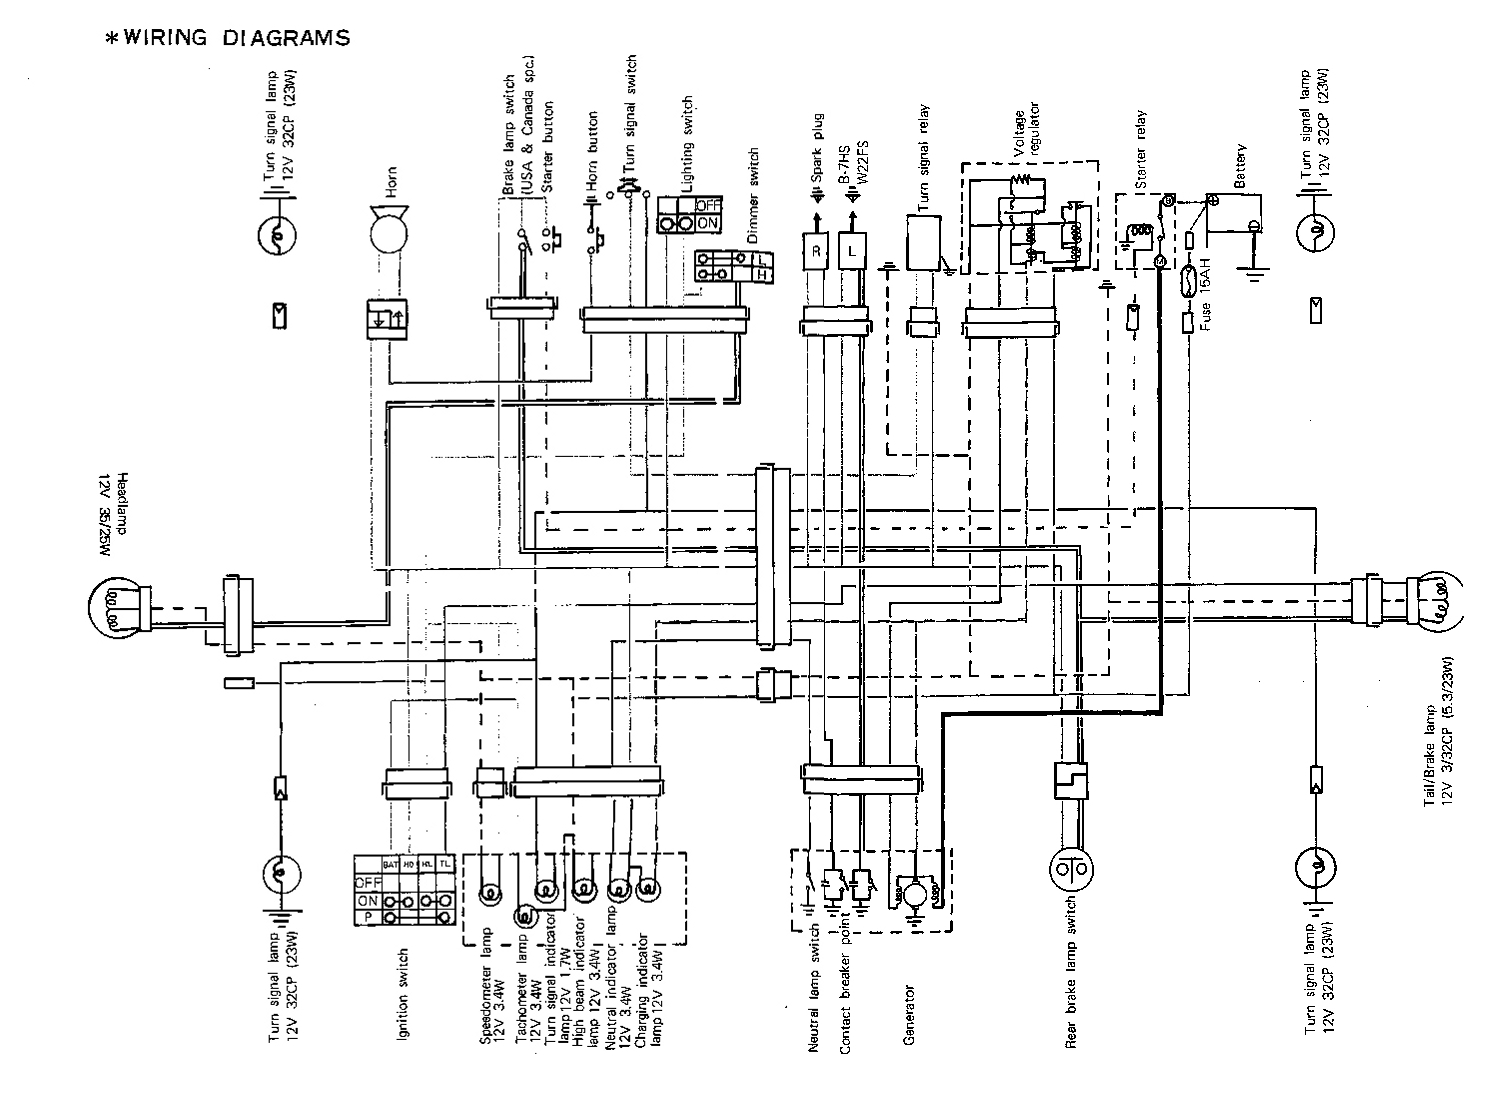 Suzuki 185 Wiring Diagram Free For You Harness Gt185 Service Manual Gt Motorcycle Diagrams